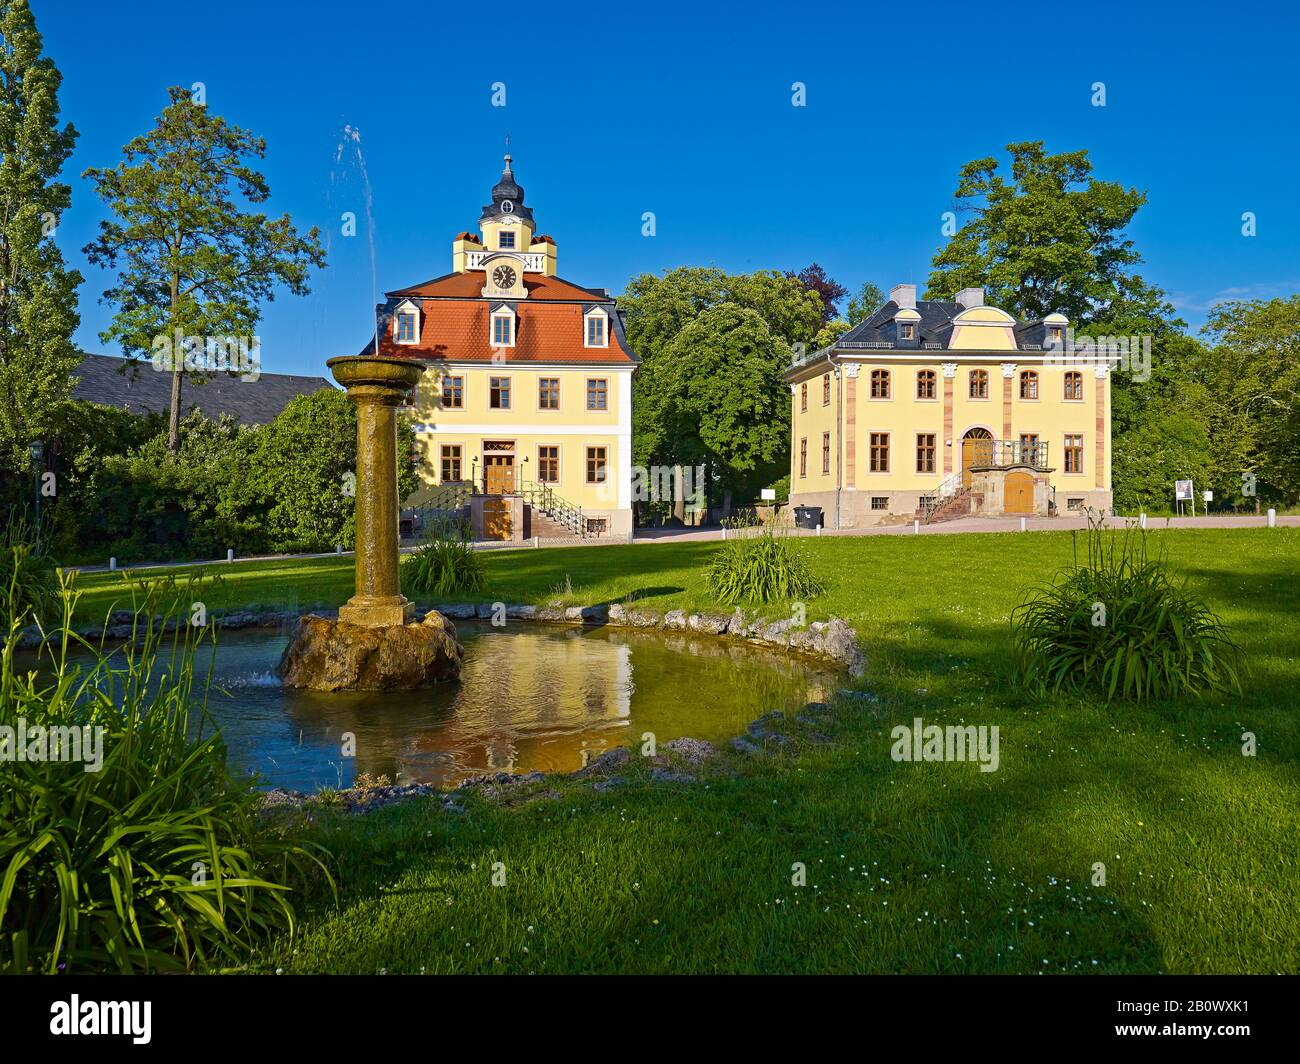 Cavalier houses in Belvedere near Weimar, Thuringia, Germany, Europe Stock Photo